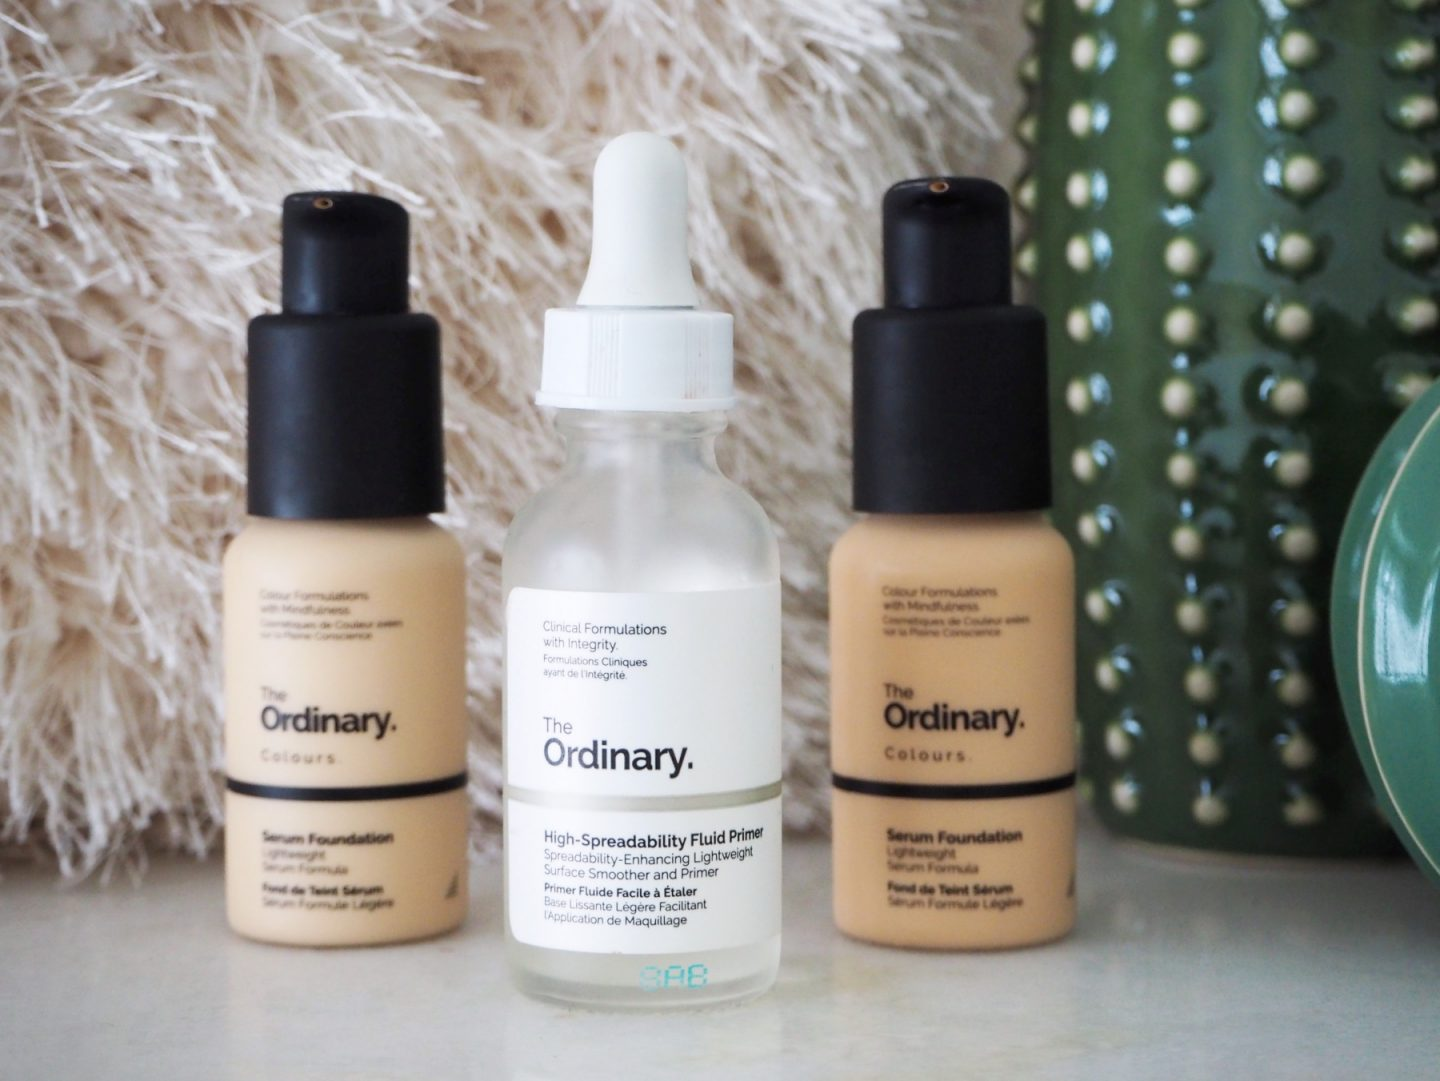 The Ordinary; The Affordable Products That Transformed My Skin - close up of serum foundations & high-spreadability fluid primer